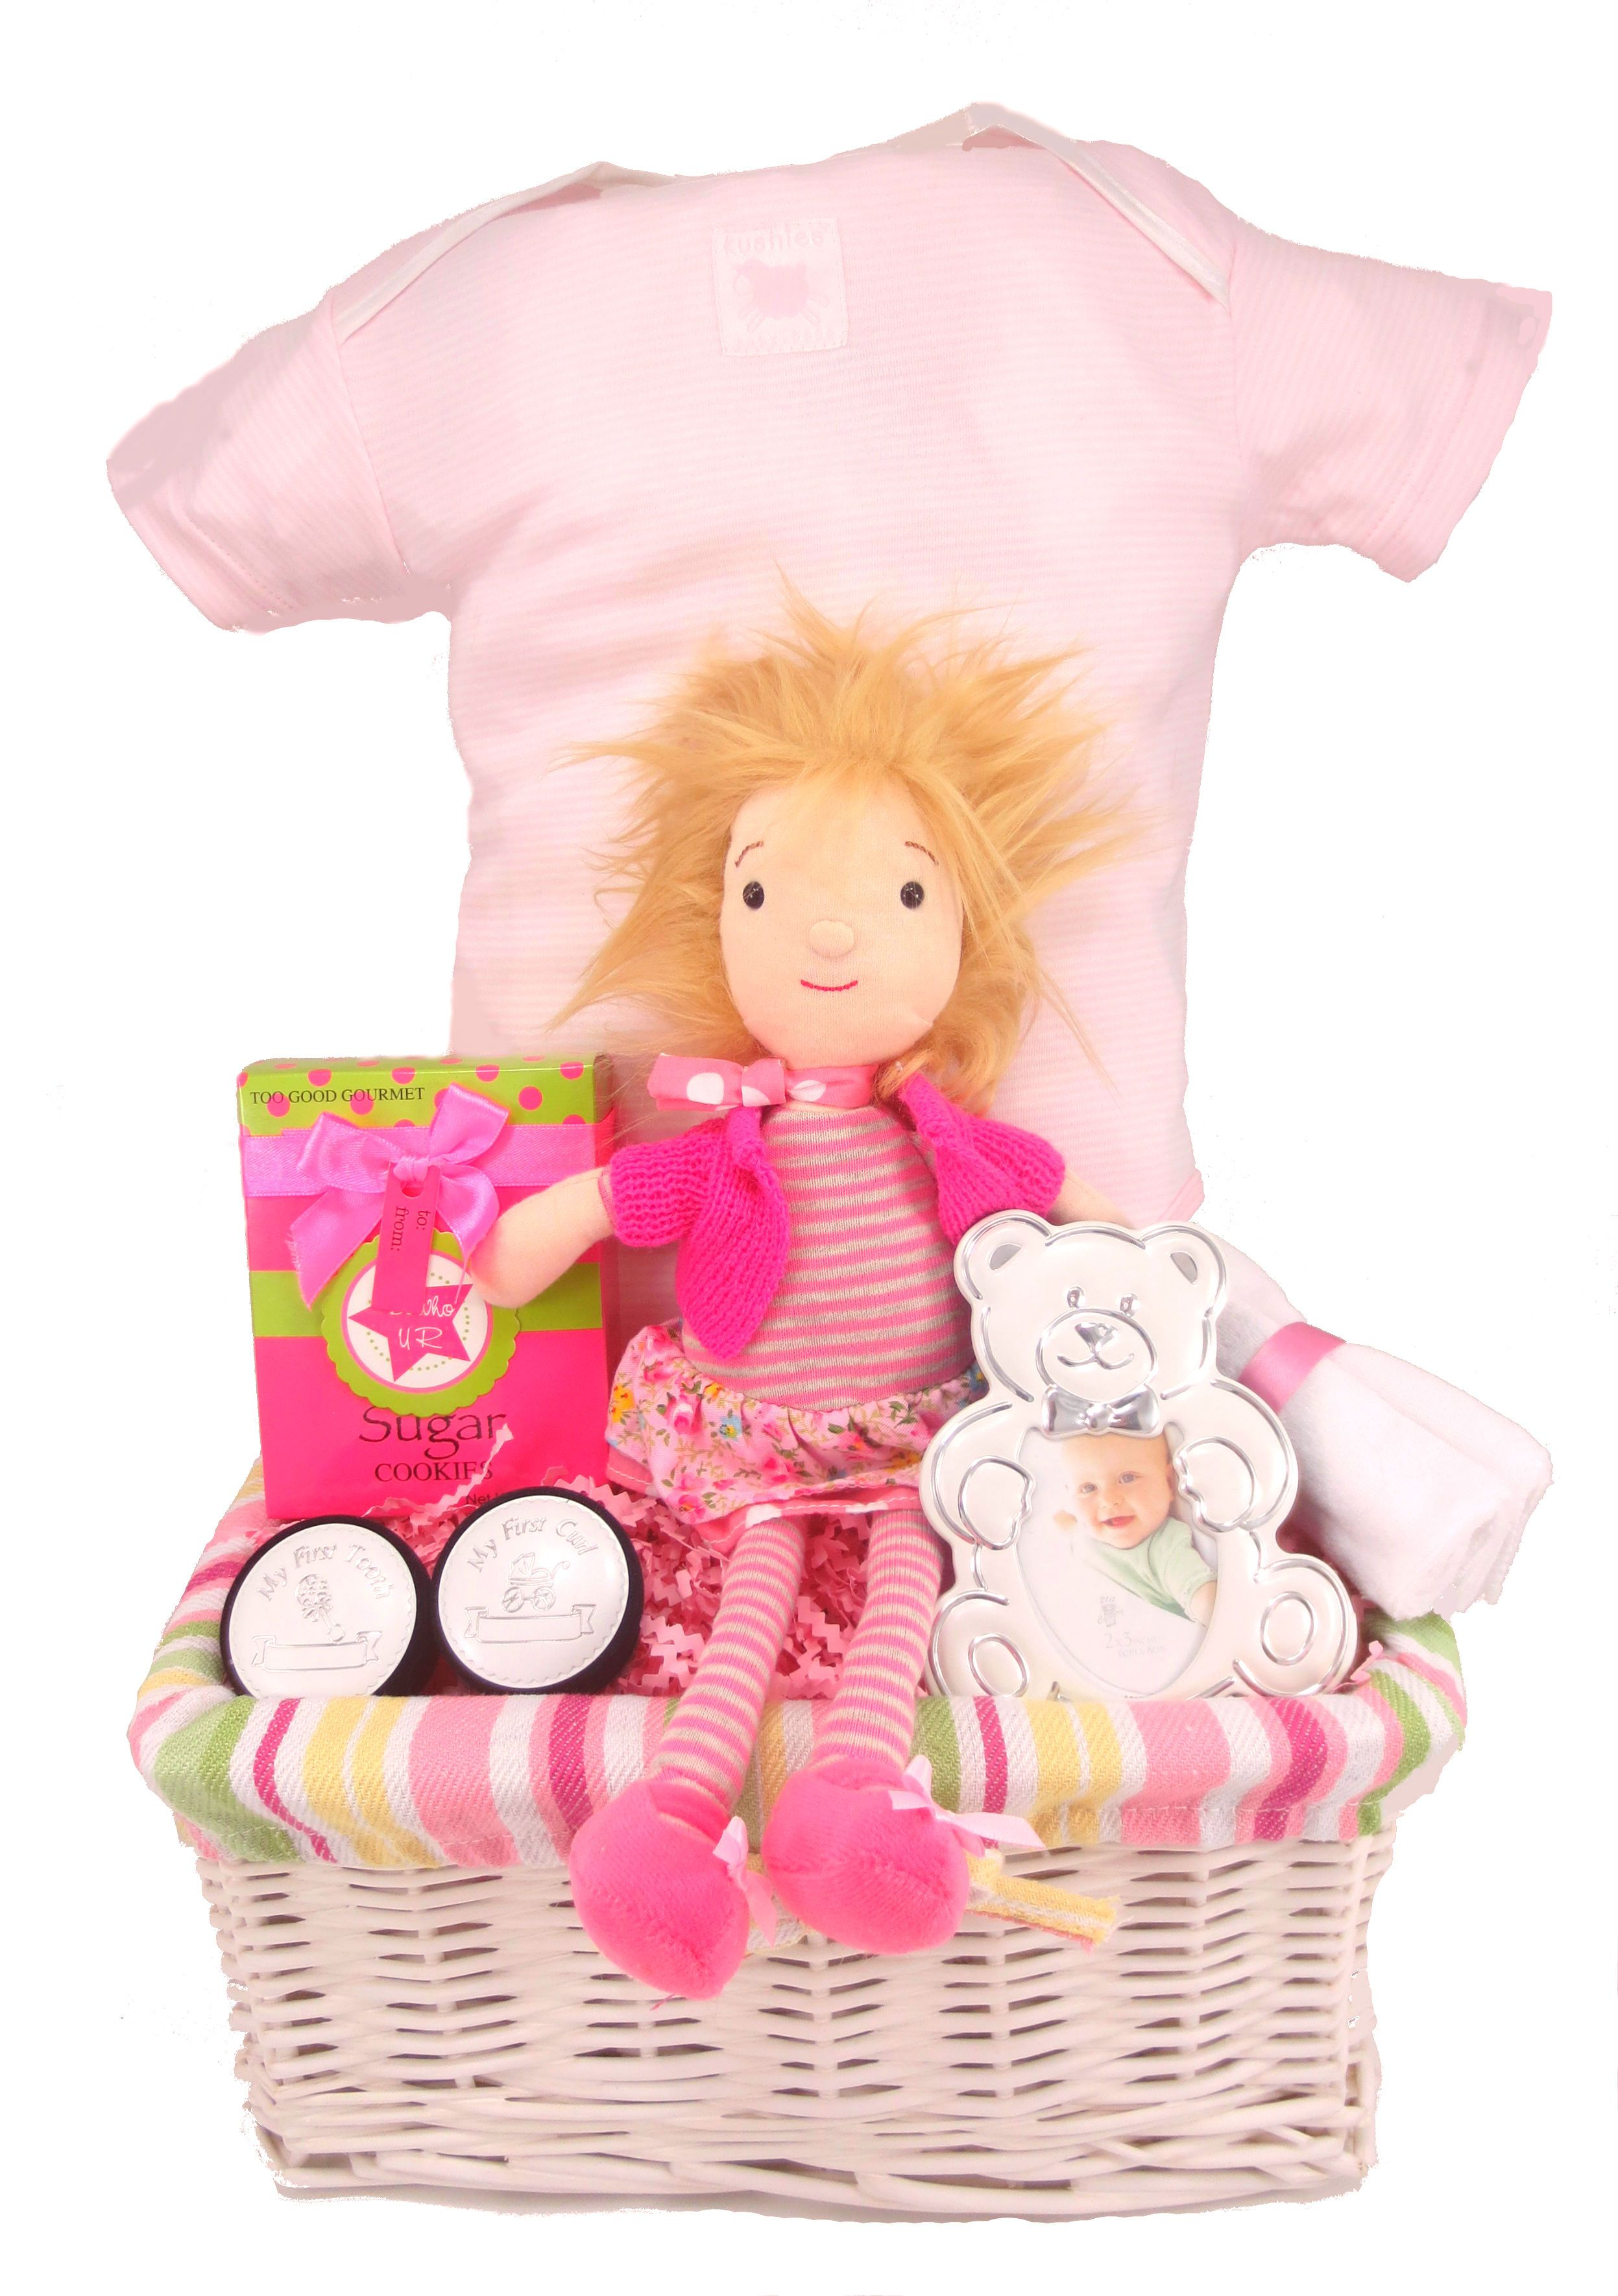 Fun Pink Baby Gift Baskets